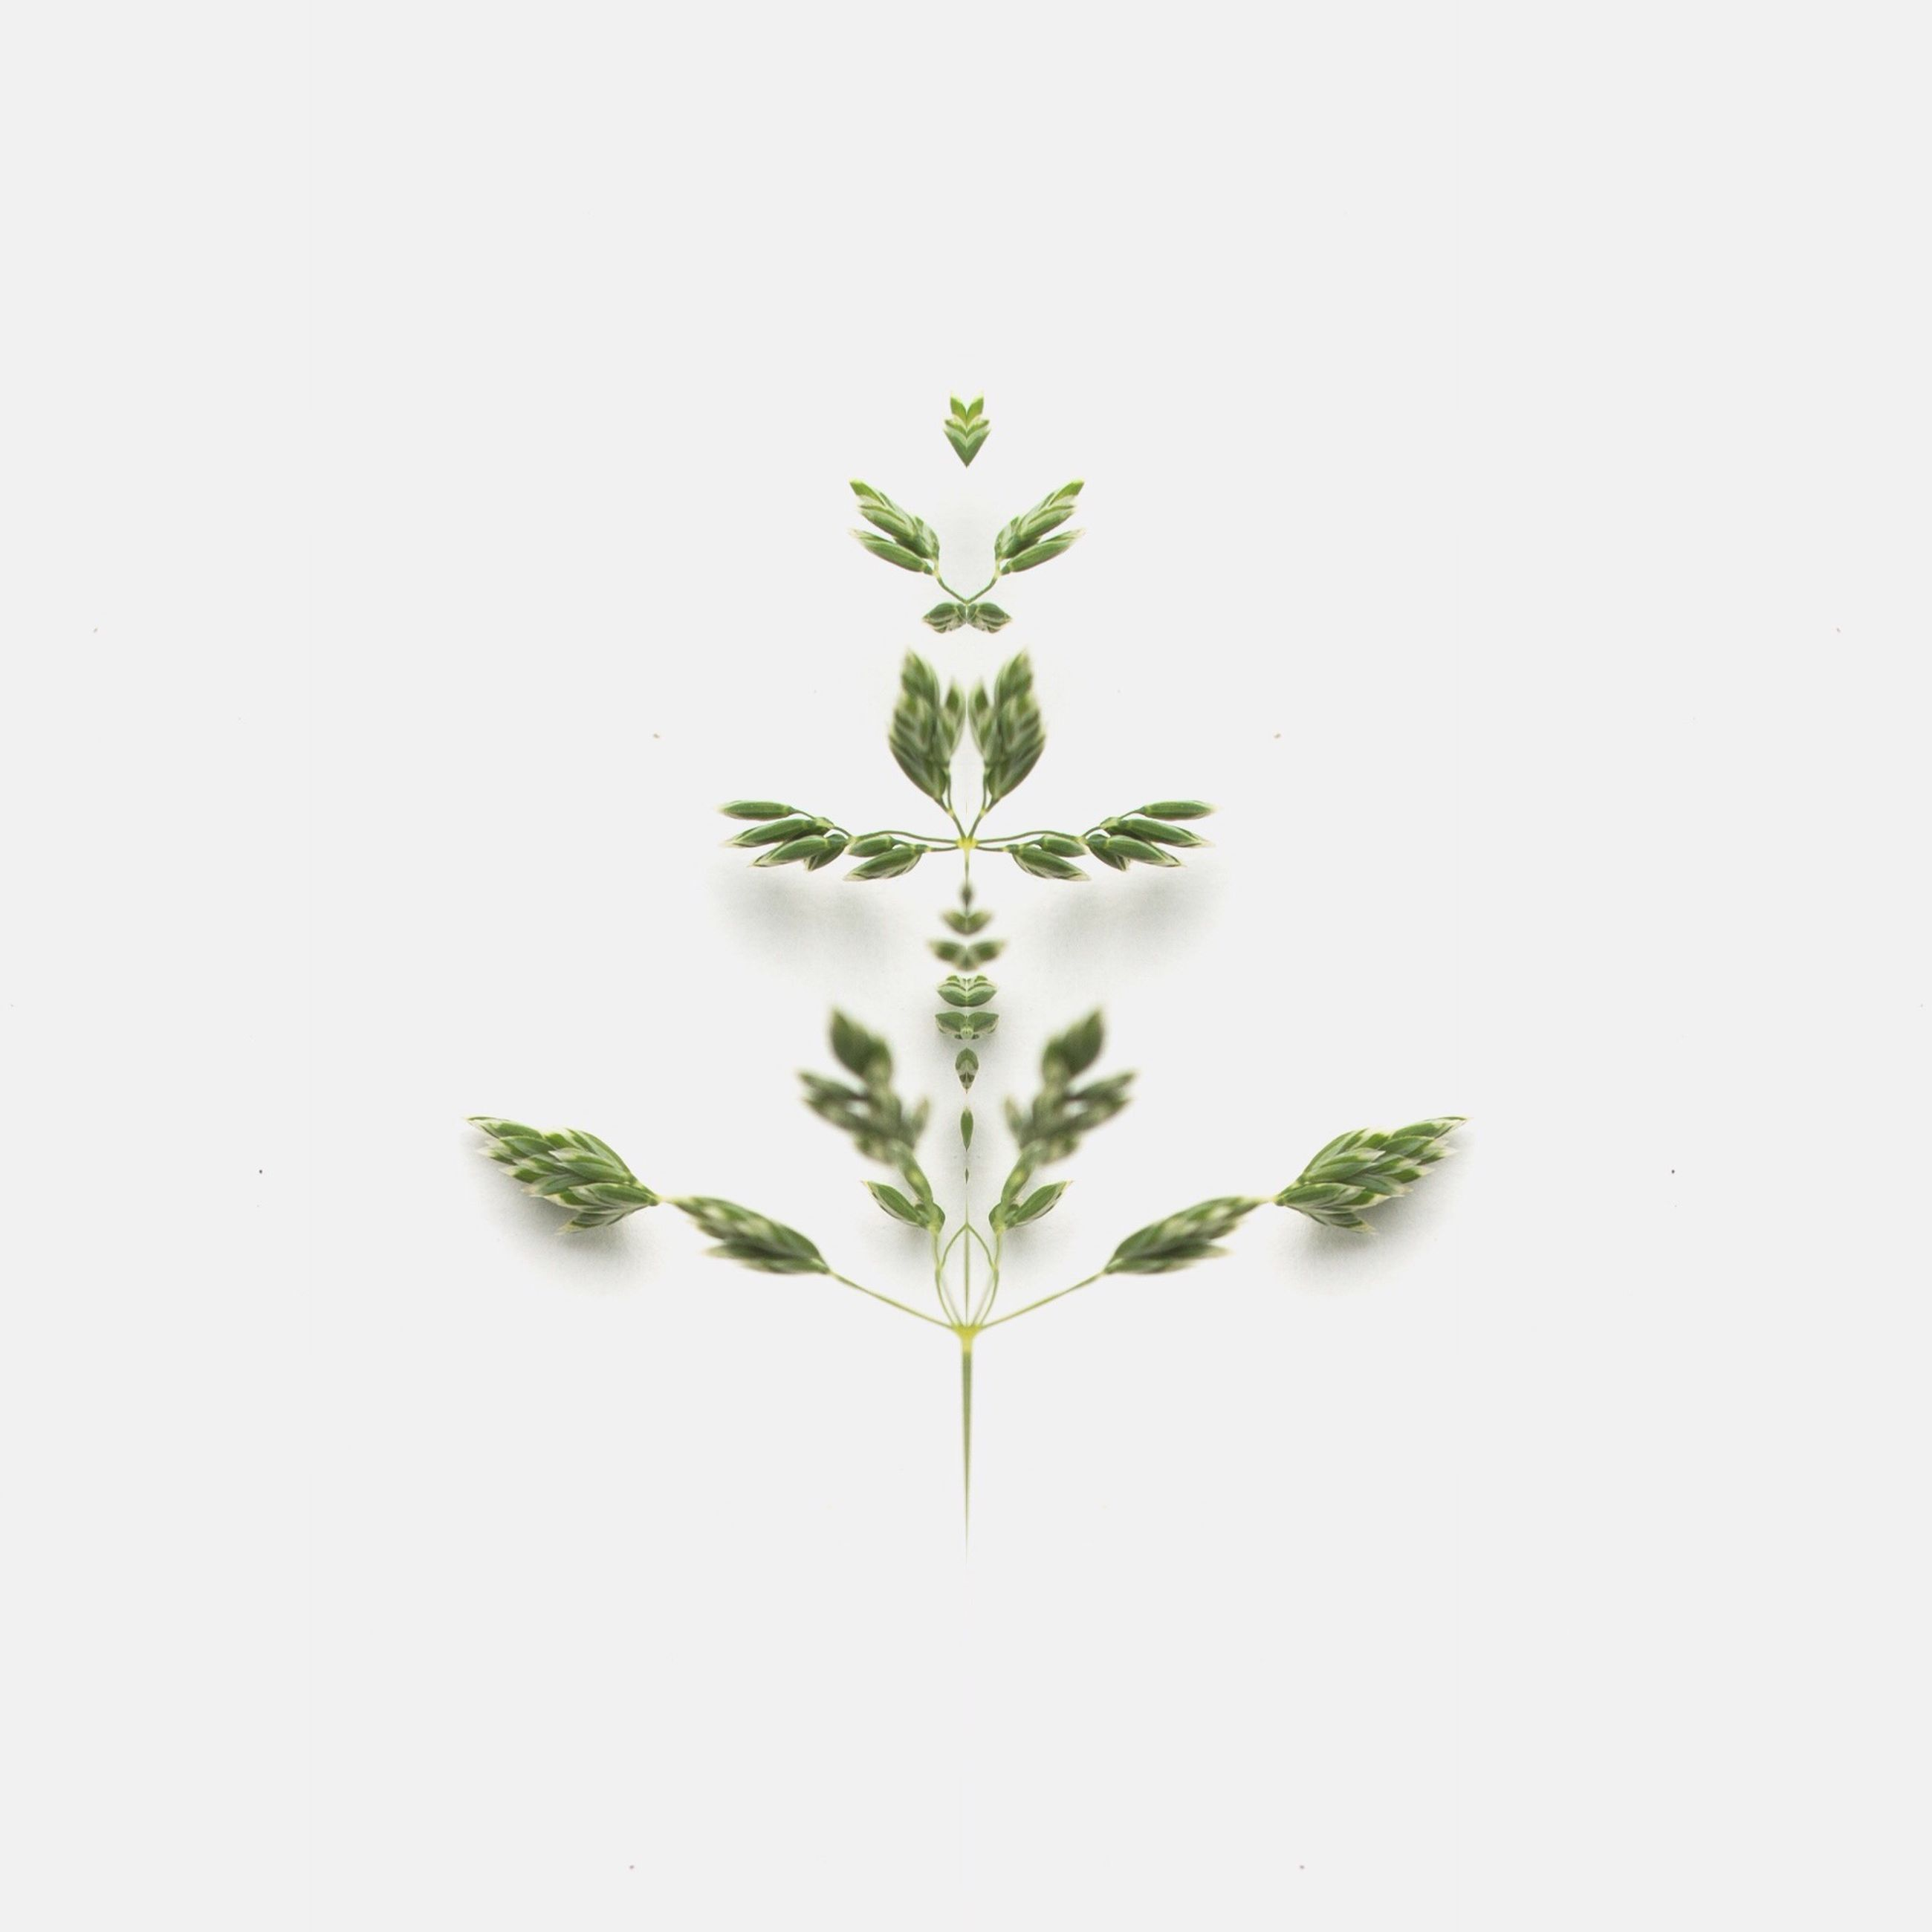 copy space, white background, leaf, studio shot, growth, green color, plant, nature, clear sky, beauty in nature, freshness, stem, green, close-up, no people, growing, tranquility, cut out, day, botany